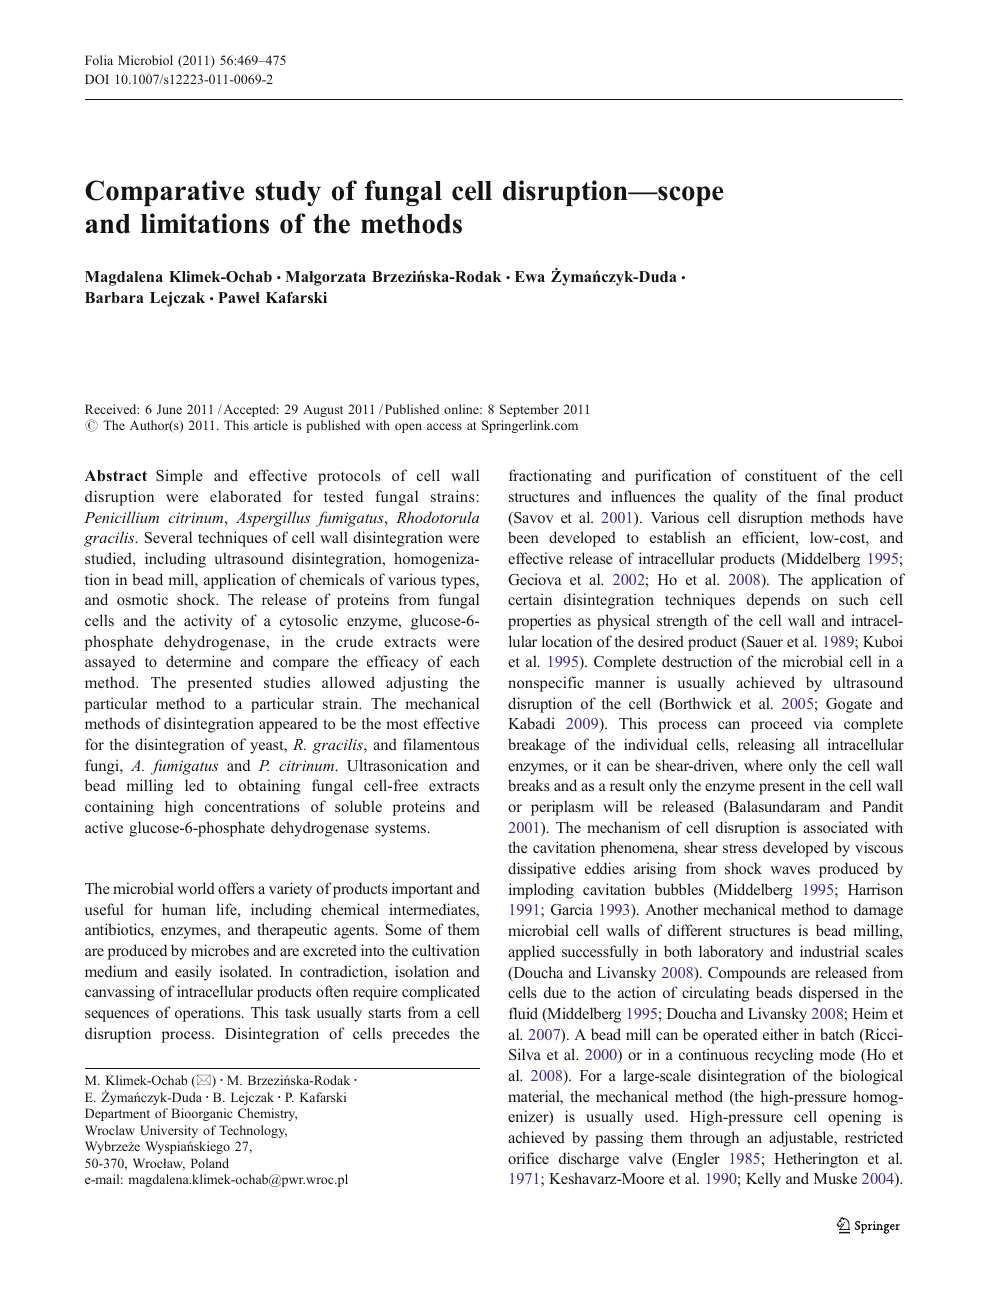 Comparative study of fungal cell disruption—scope and limitations of the  methods – topic of research paper in Agricultural biotechnology. Download  scholarly article PDF and read for free on CyberLeninka open science hub.